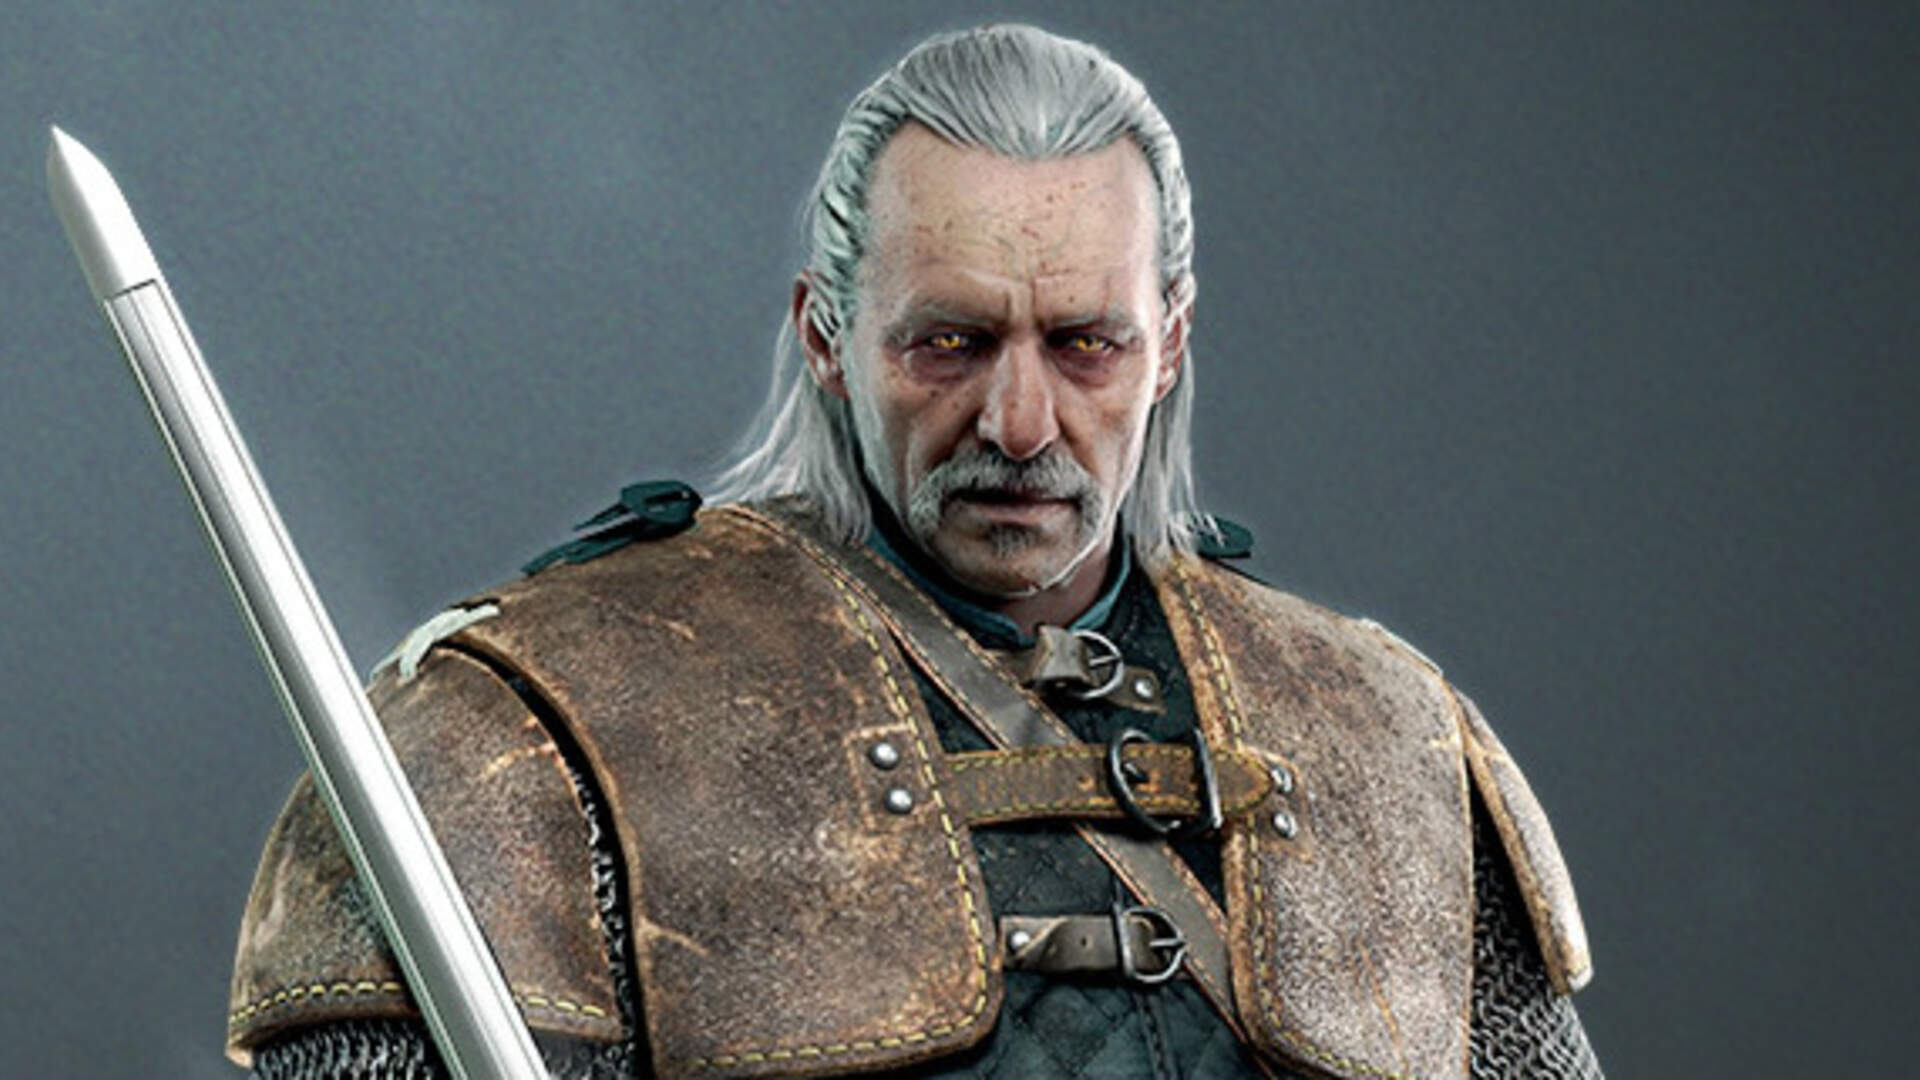 Vesemir Will Star in the Anime Witcher Movie on Netflix